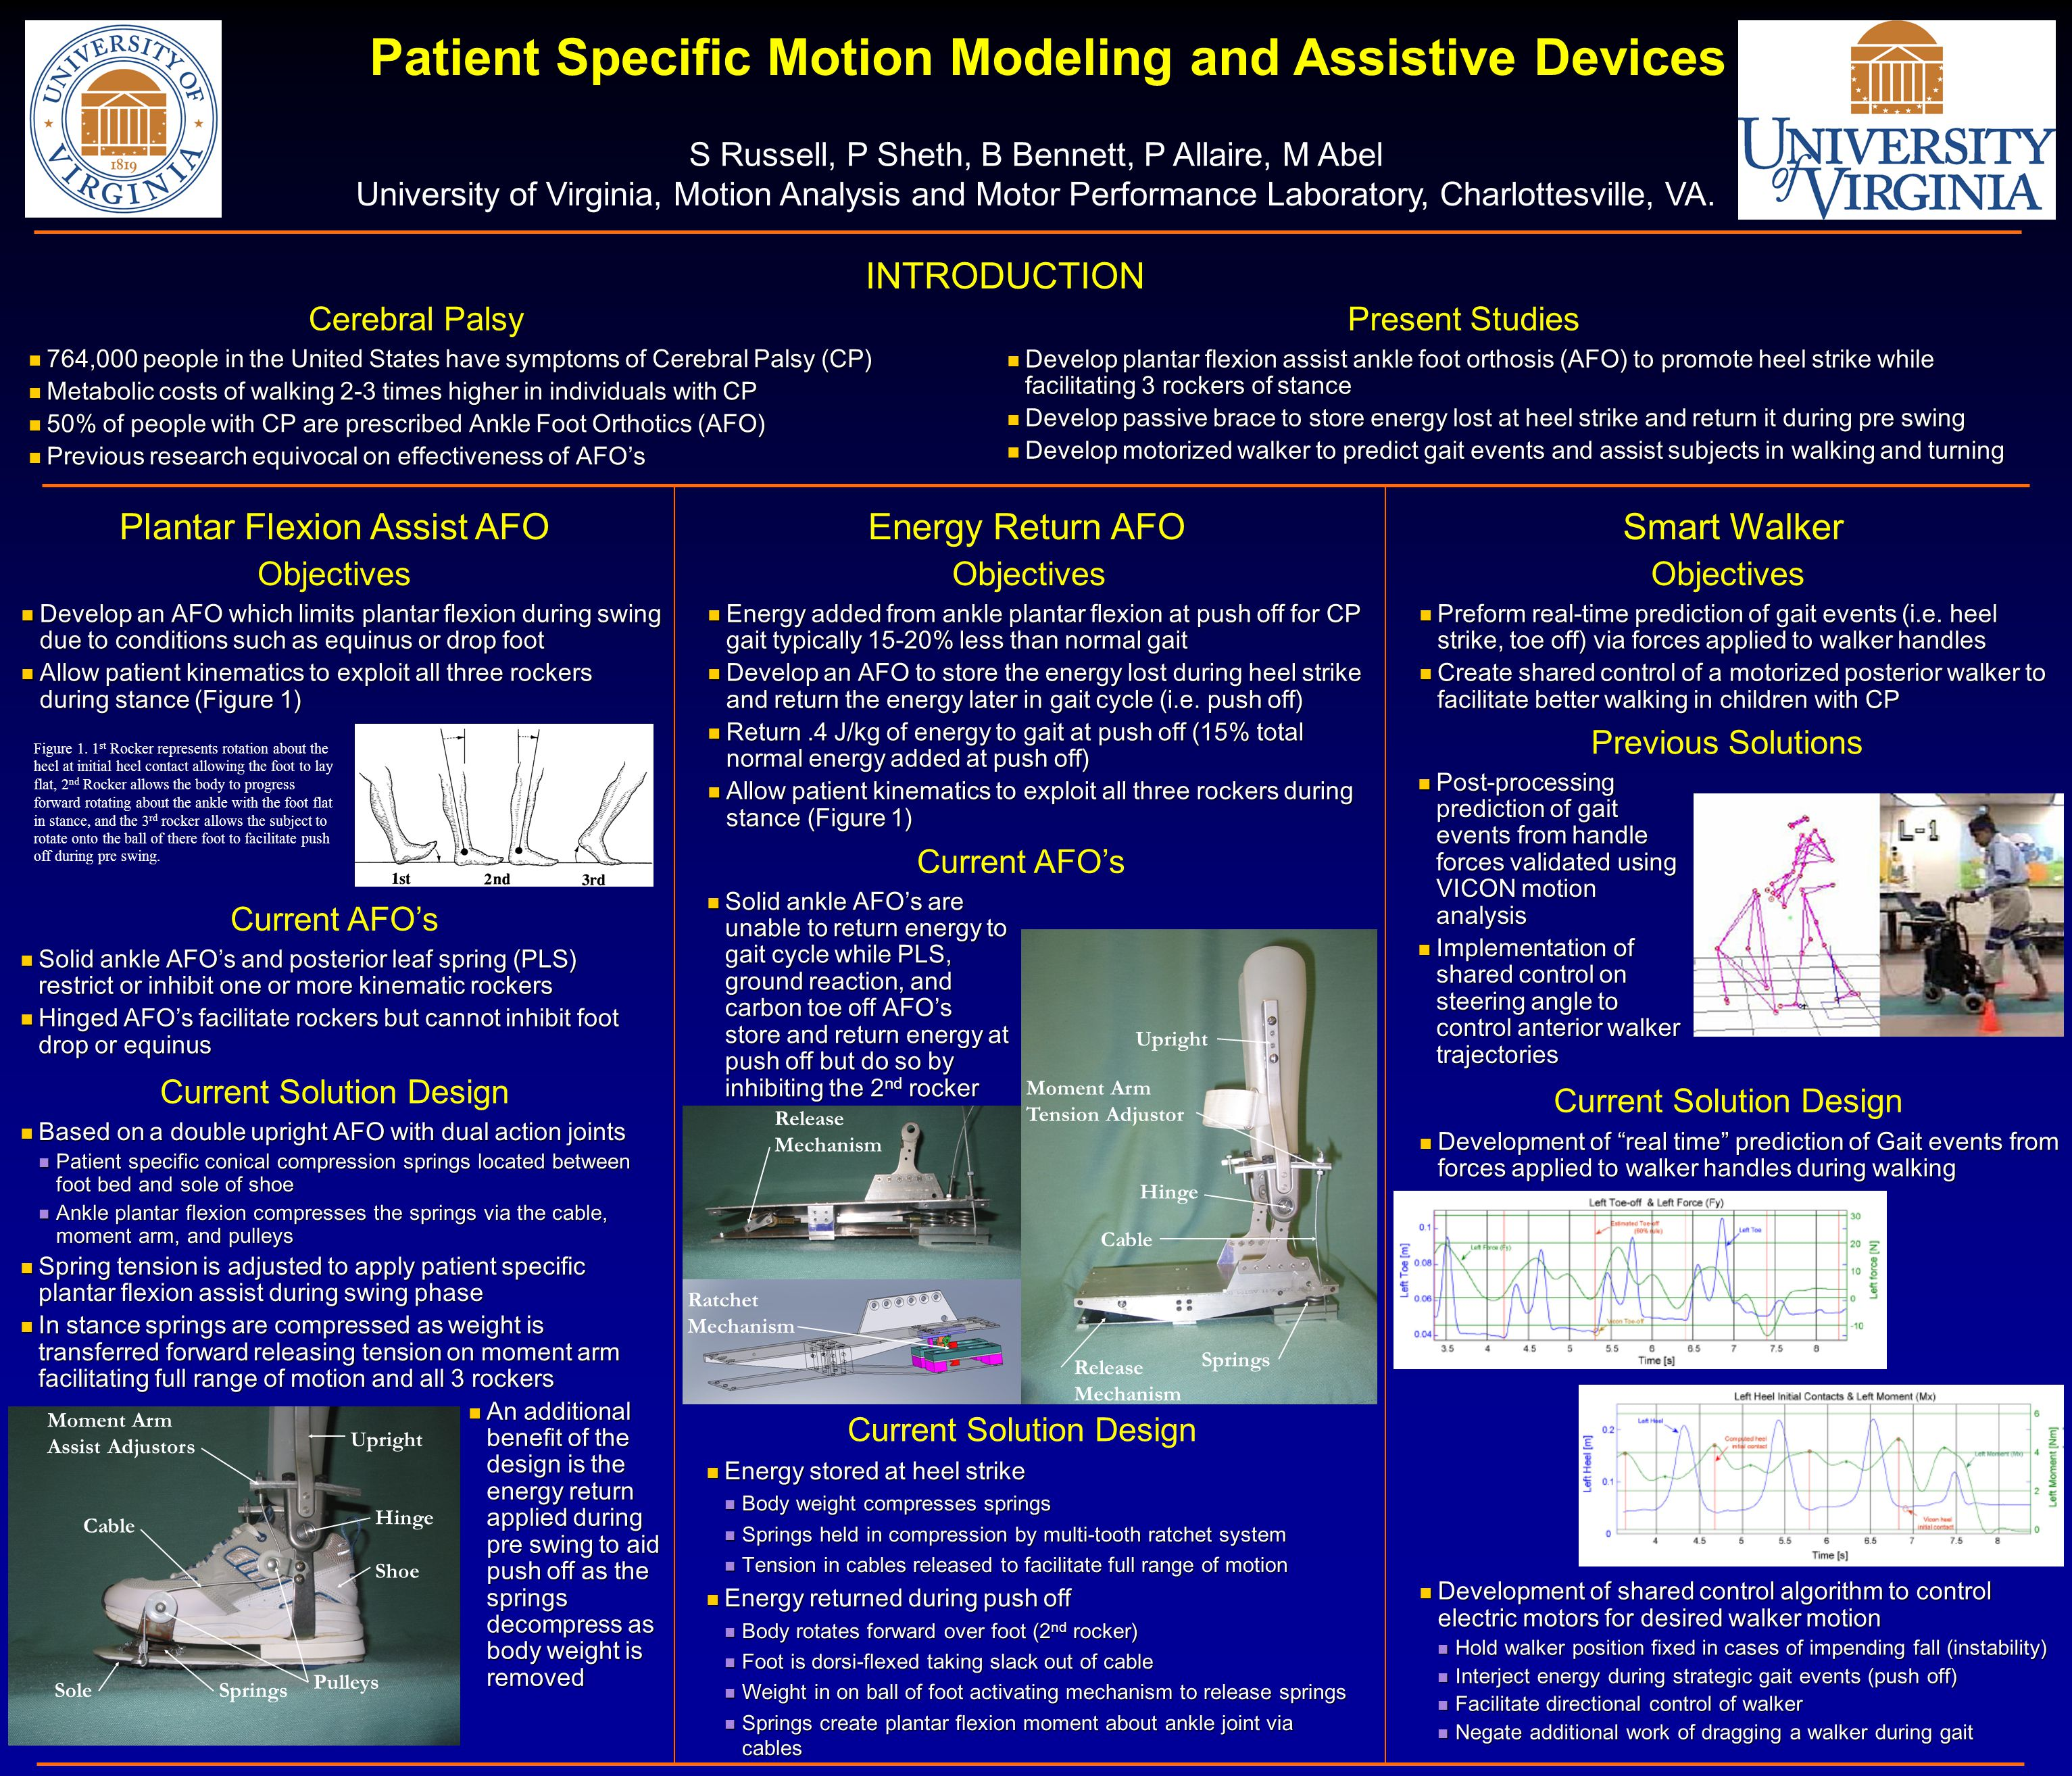 Present Studies Patient Specific Motion Modeling and Assistive Devices S Russell, P Sheth, B Bennett, P Allaire, M Abel University of Virginia, Motion Analysis and Motor Performance Laboratory, Charlottesville, VA.